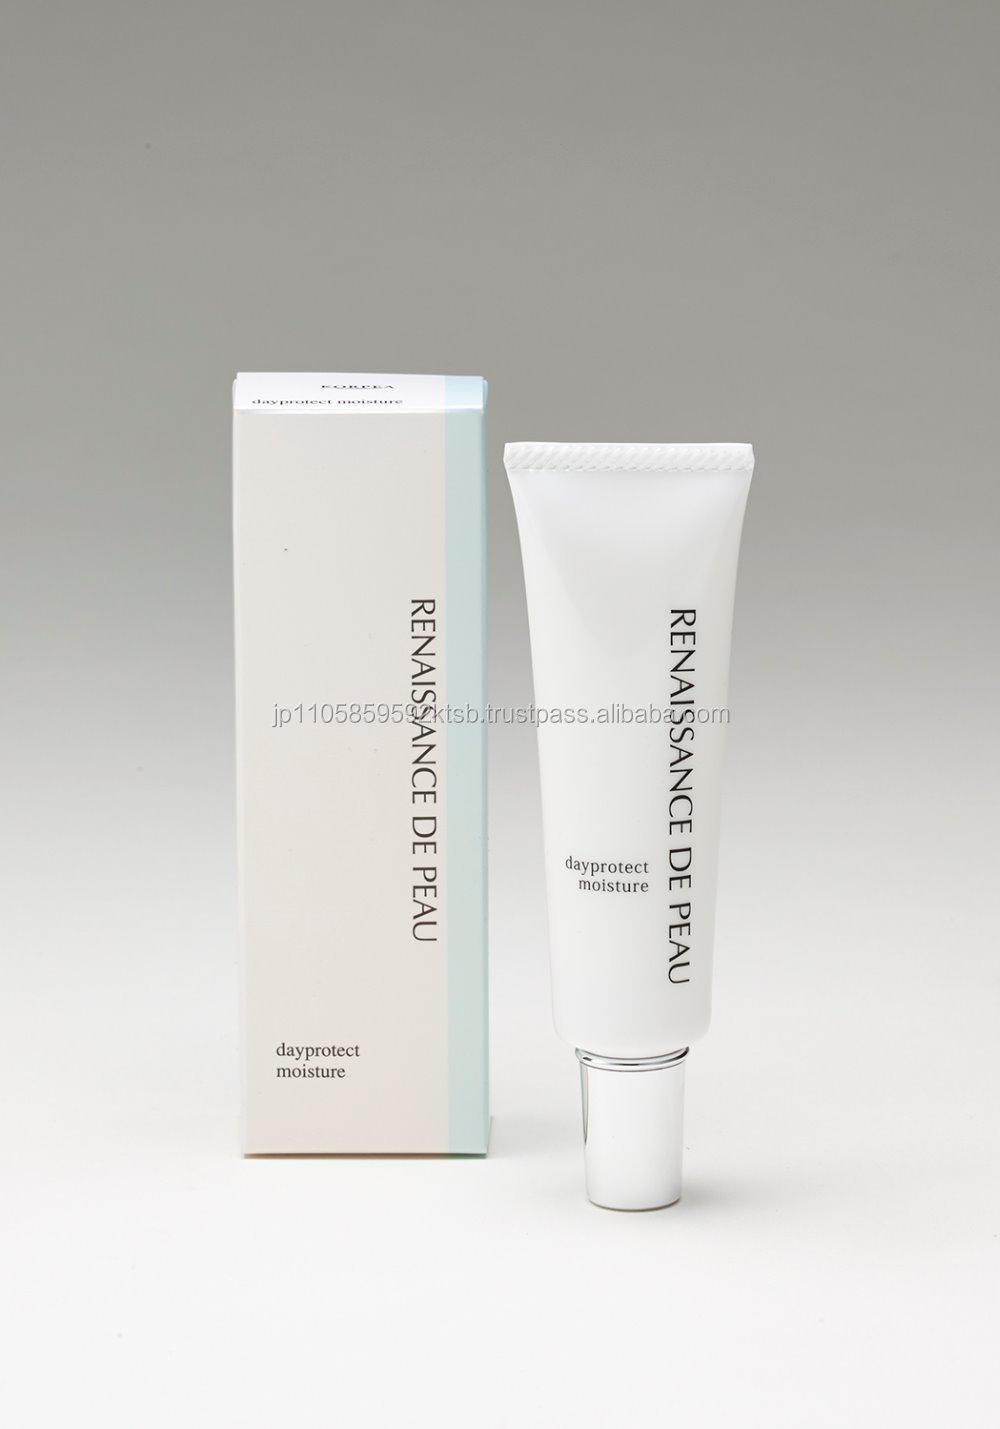 RENAISSANCE DE PEAU anti-aging activate cream from Japanese cosmetics company